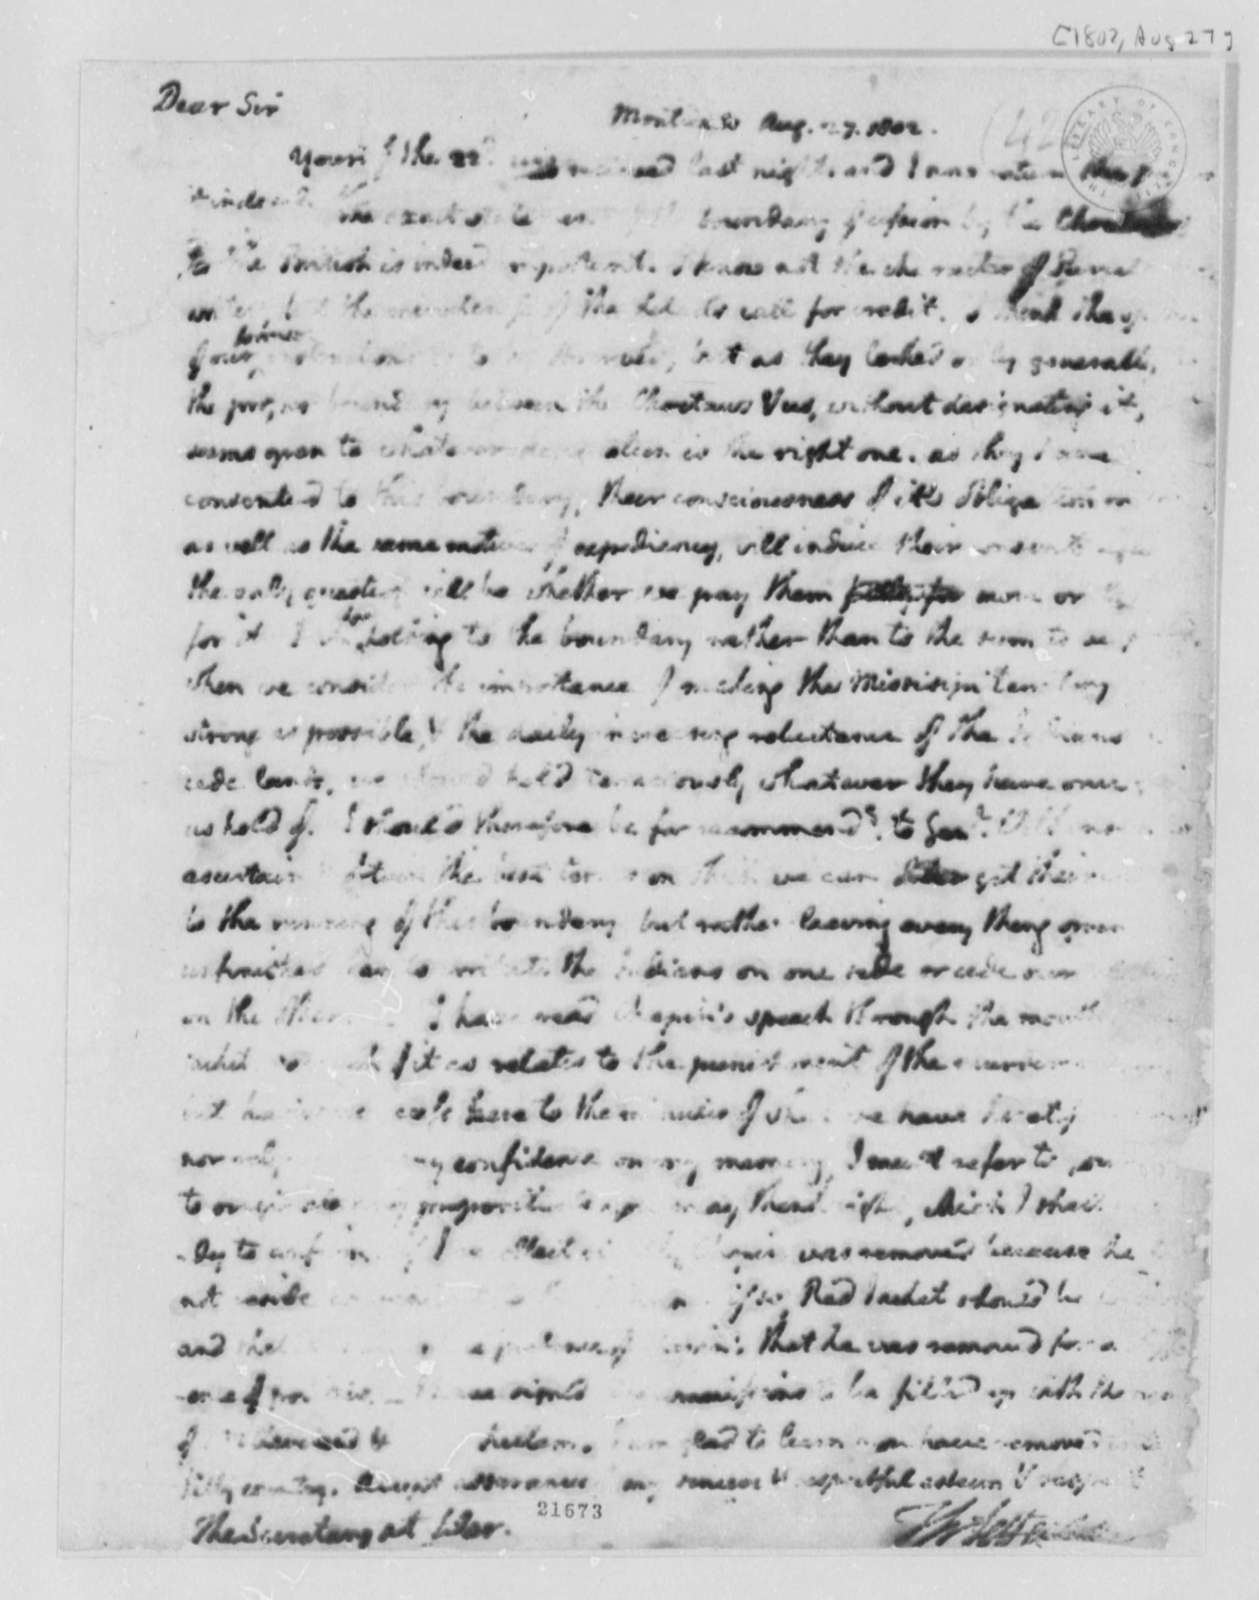 Thomas Jefferson to Henry Dearborn, August 27, 1802